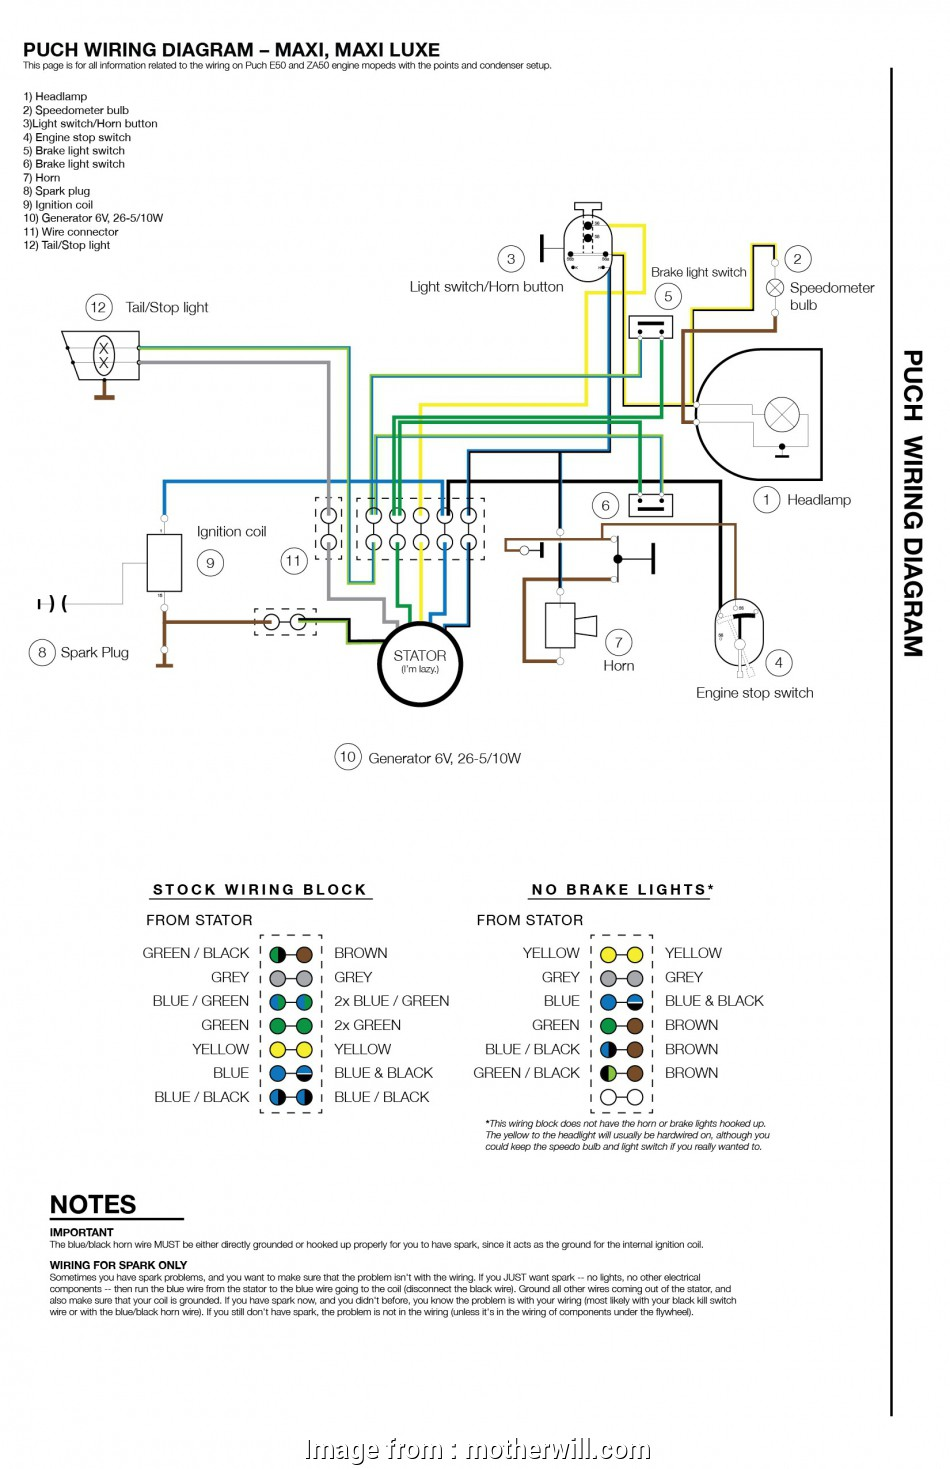 s10 brake light switch wiring Chevy Brake Light Switch Wiring Beautiful Trifive 1955 1956 Simple Diagram Of, 3 S10 Brake Light Switch Wiring Simple Chevy Brake Light Switch Wiring Beautiful Trifive 1955 1956 Simple Diagram Of, 3 Galleries